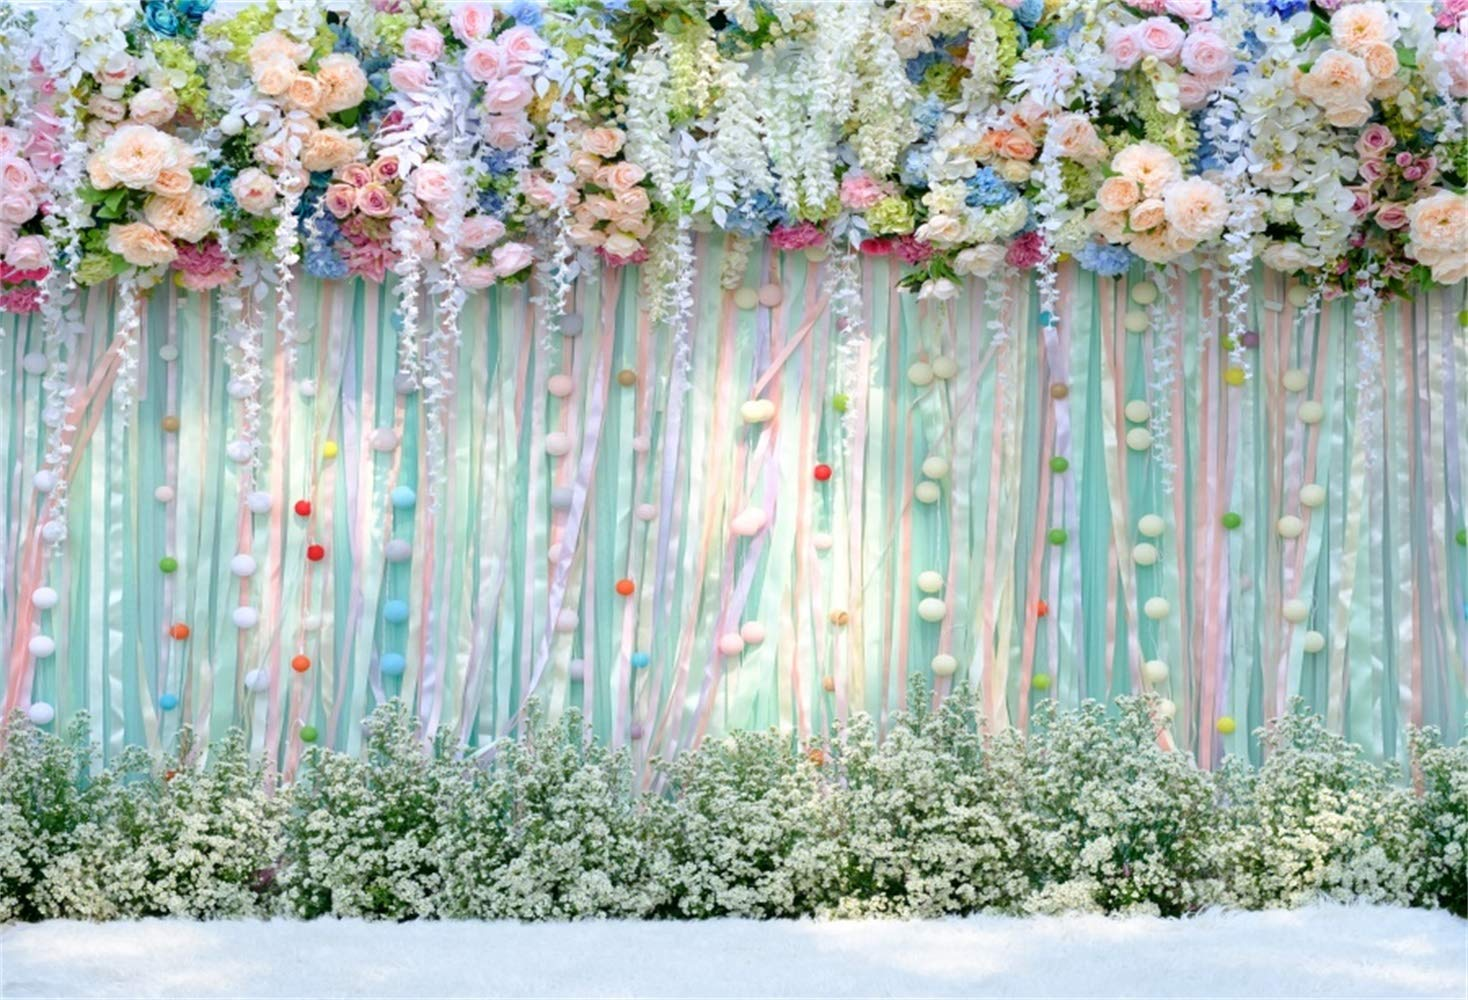 Laeacco 10x6.5ft Vinyl Graceful White Flowers Decorated Wedding Hall Backdrops Luxurious Wedding Reception Background Green Wall Wedding Photo Studio Valentines Day Couple Portraits